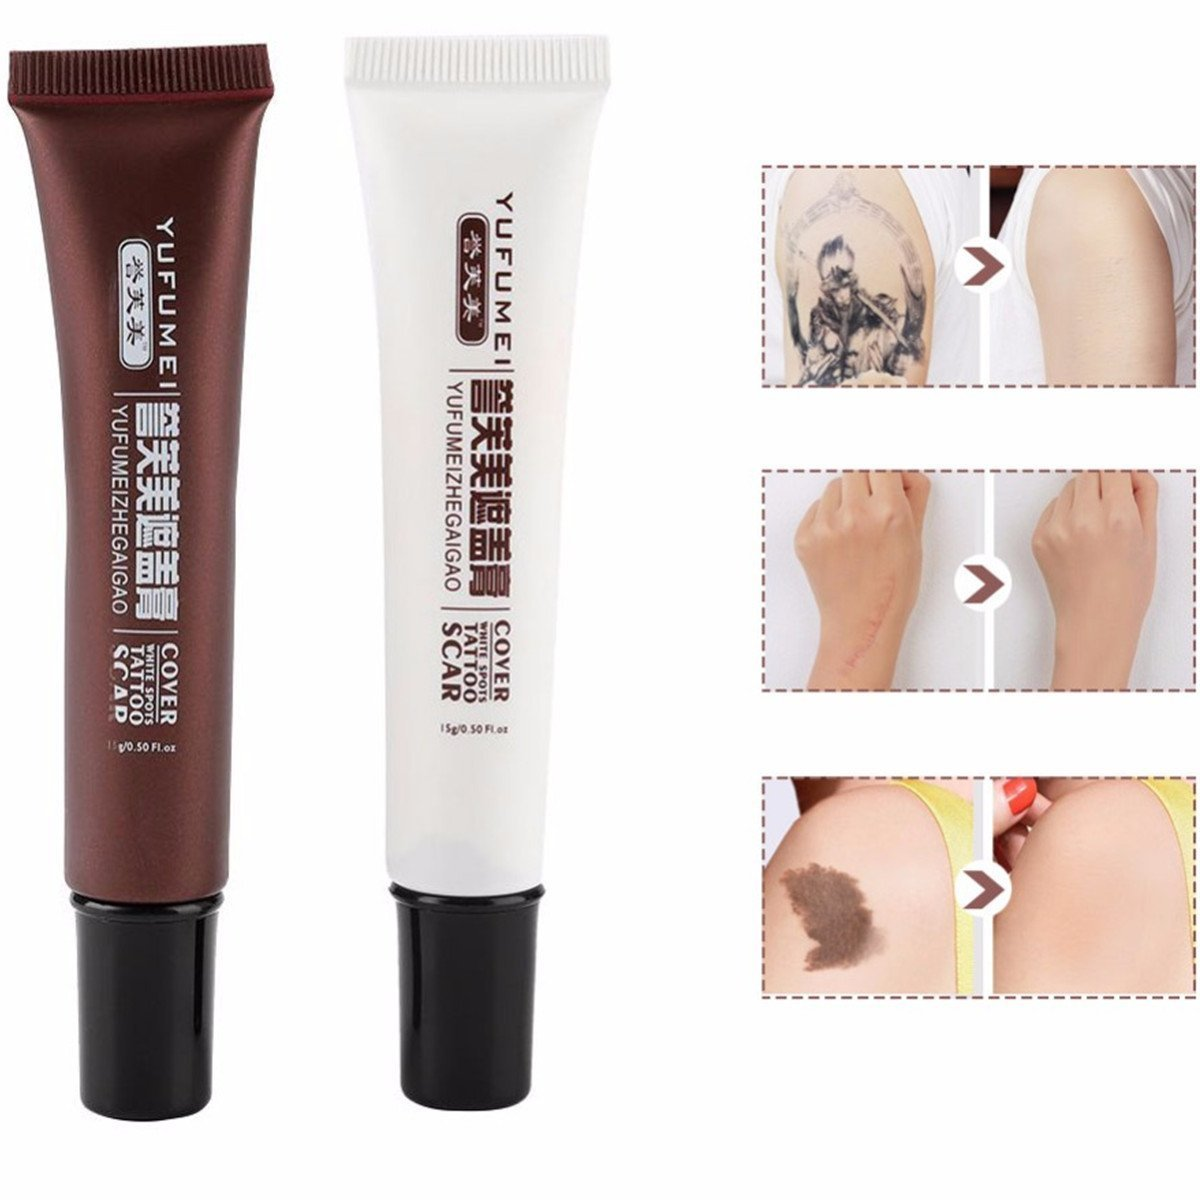 Amareu Tattoo Concealer - Hiding Spots Birthmarks Makeup Cover Up Cream Set Waterproof Cover All Ance Scar and Tattoo